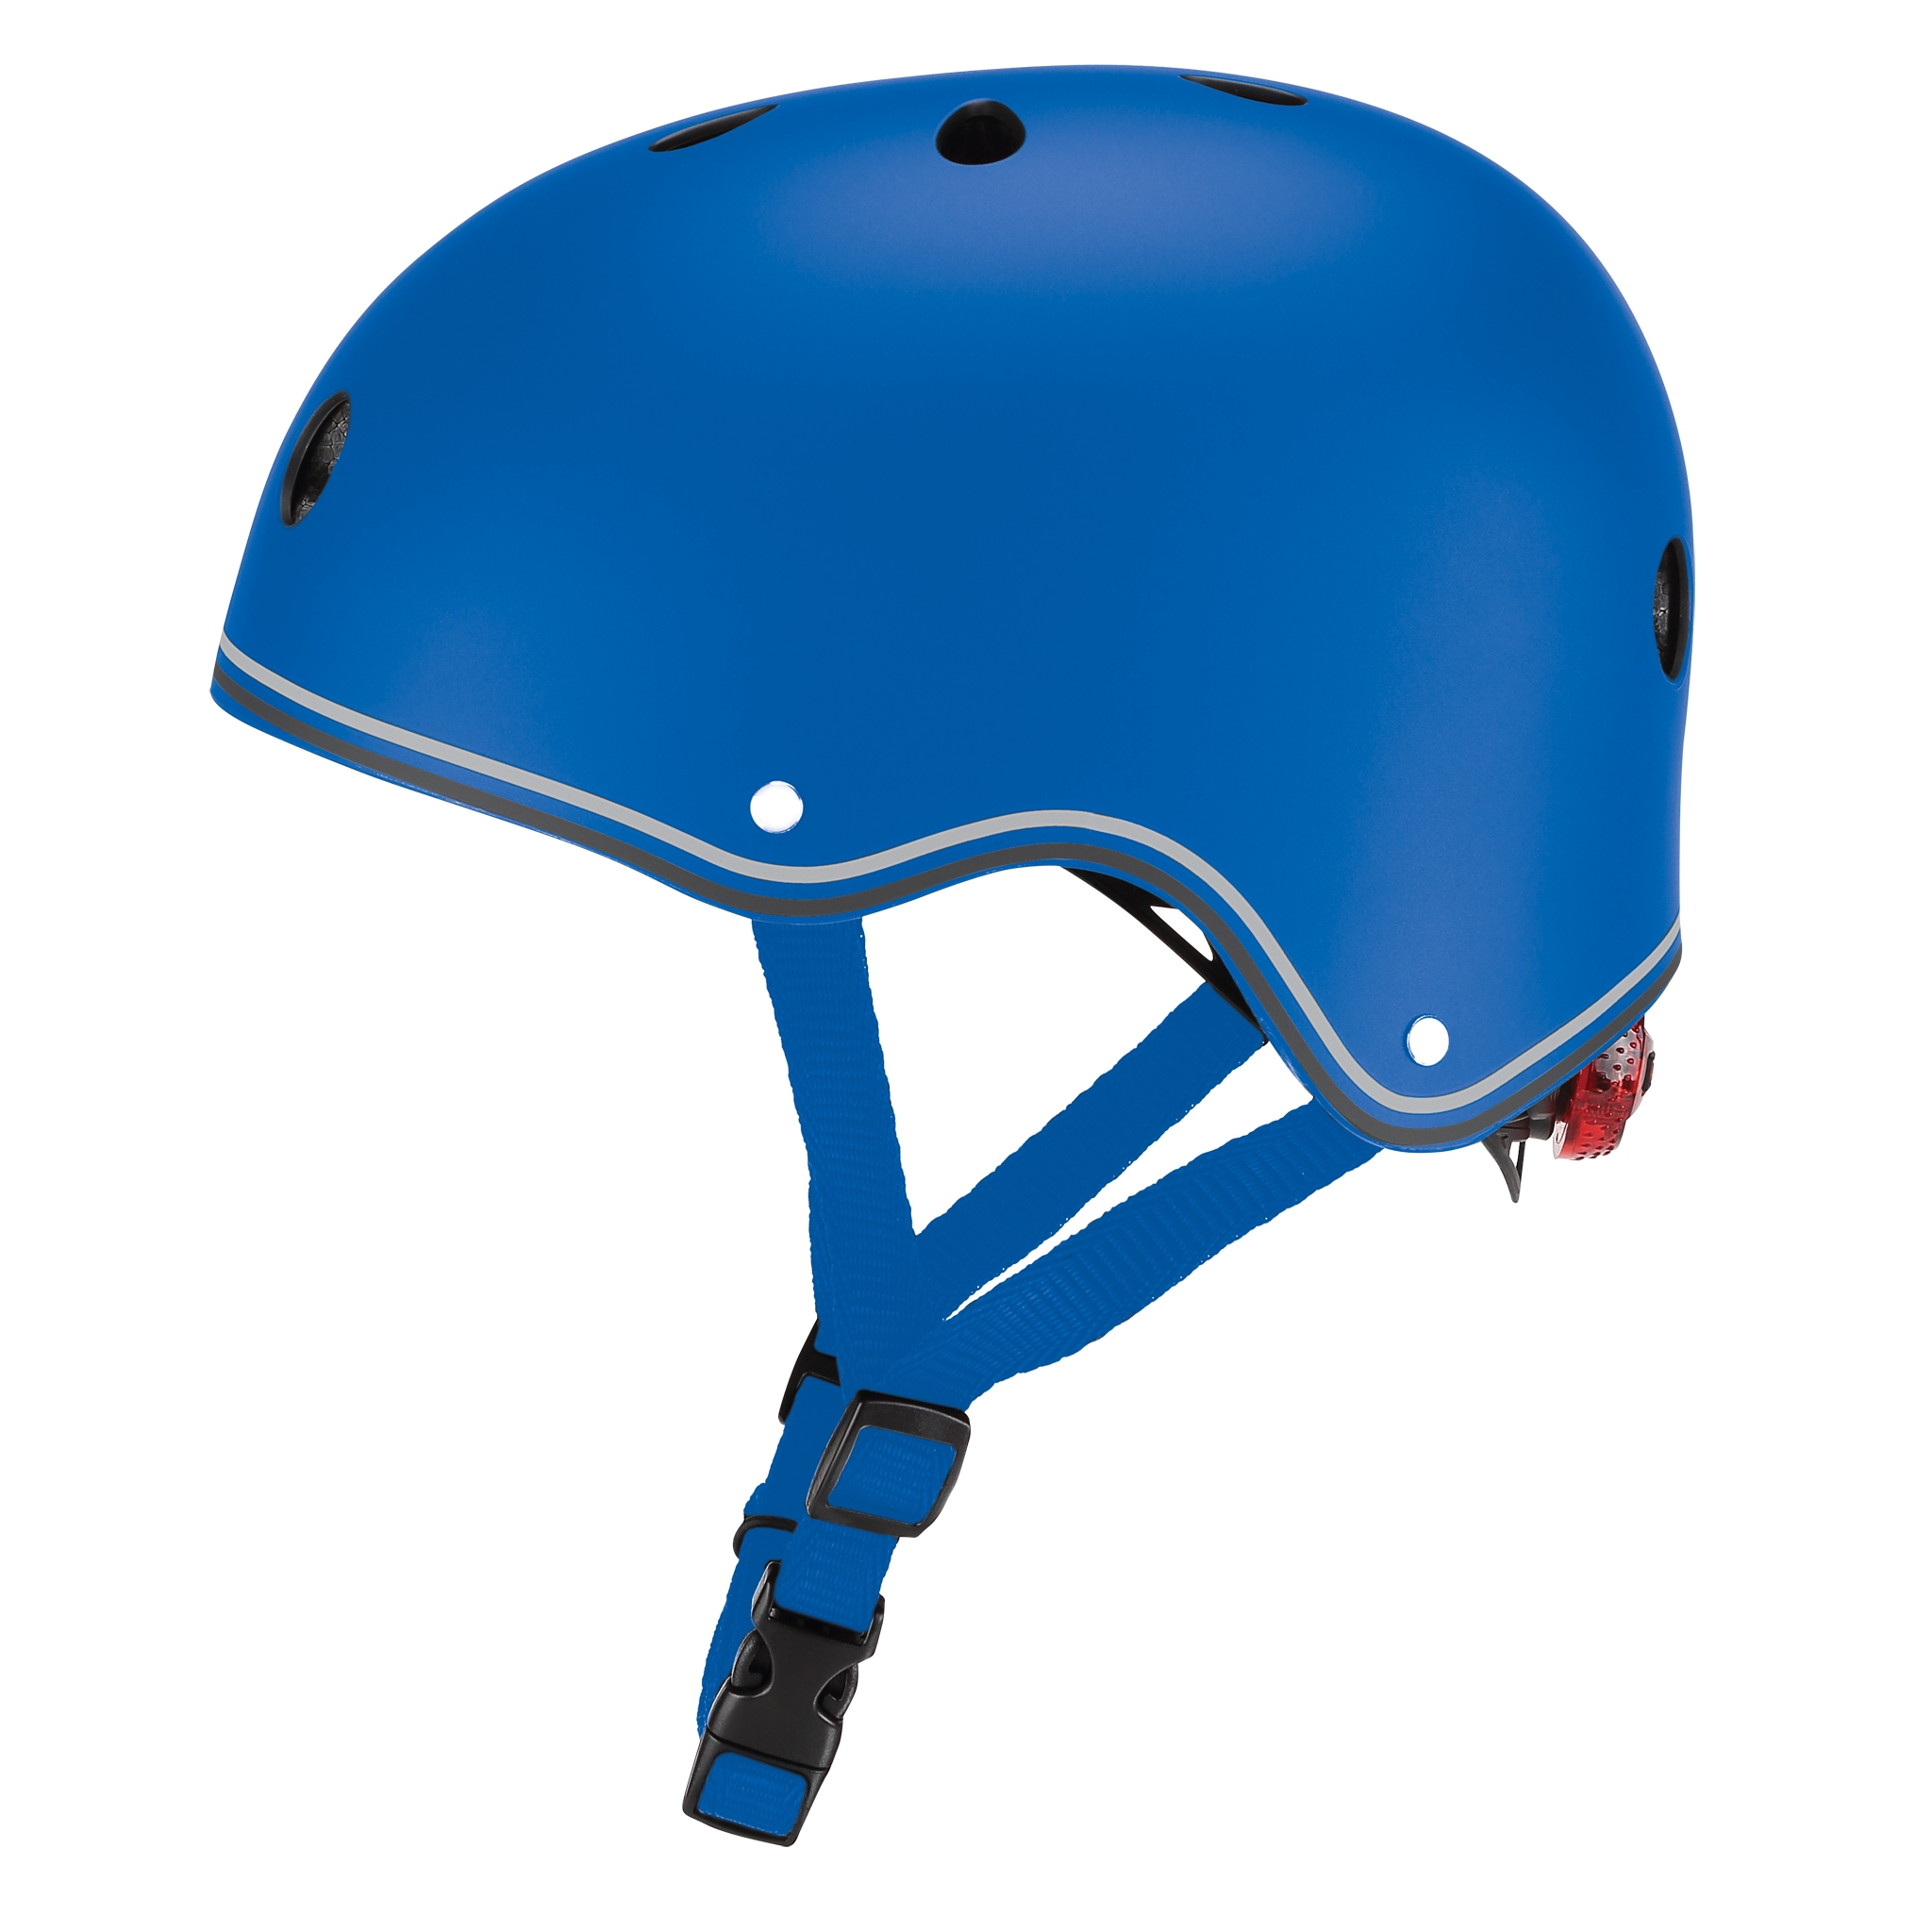 PRIMO-helmets-scooter-helmets-for-kids-with-adjustable-helmet-knob-navy-blue